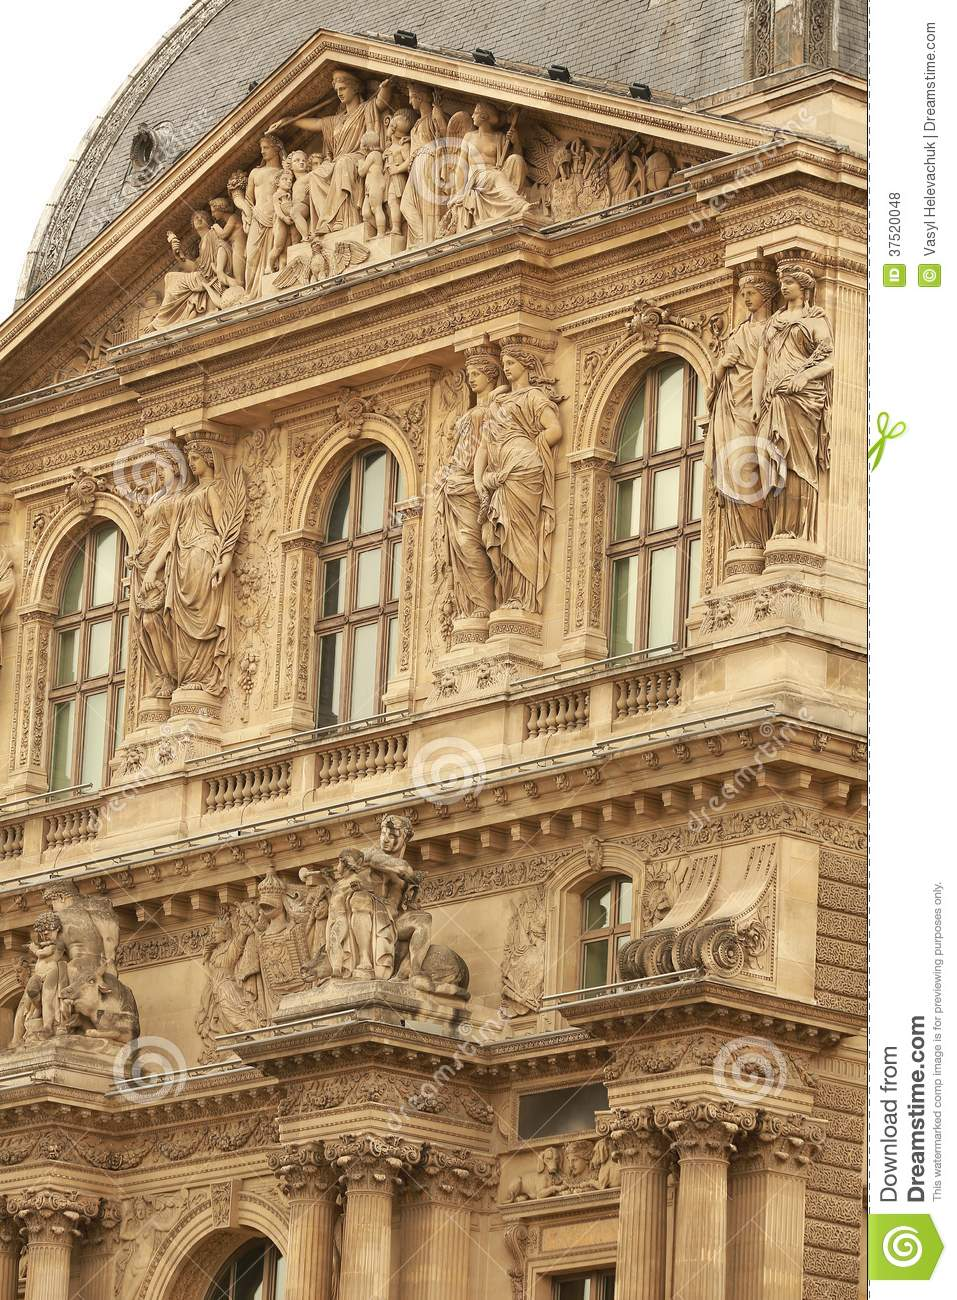 Louvre building royalty free stock photos image 37520048 - Construction of the louvre ...